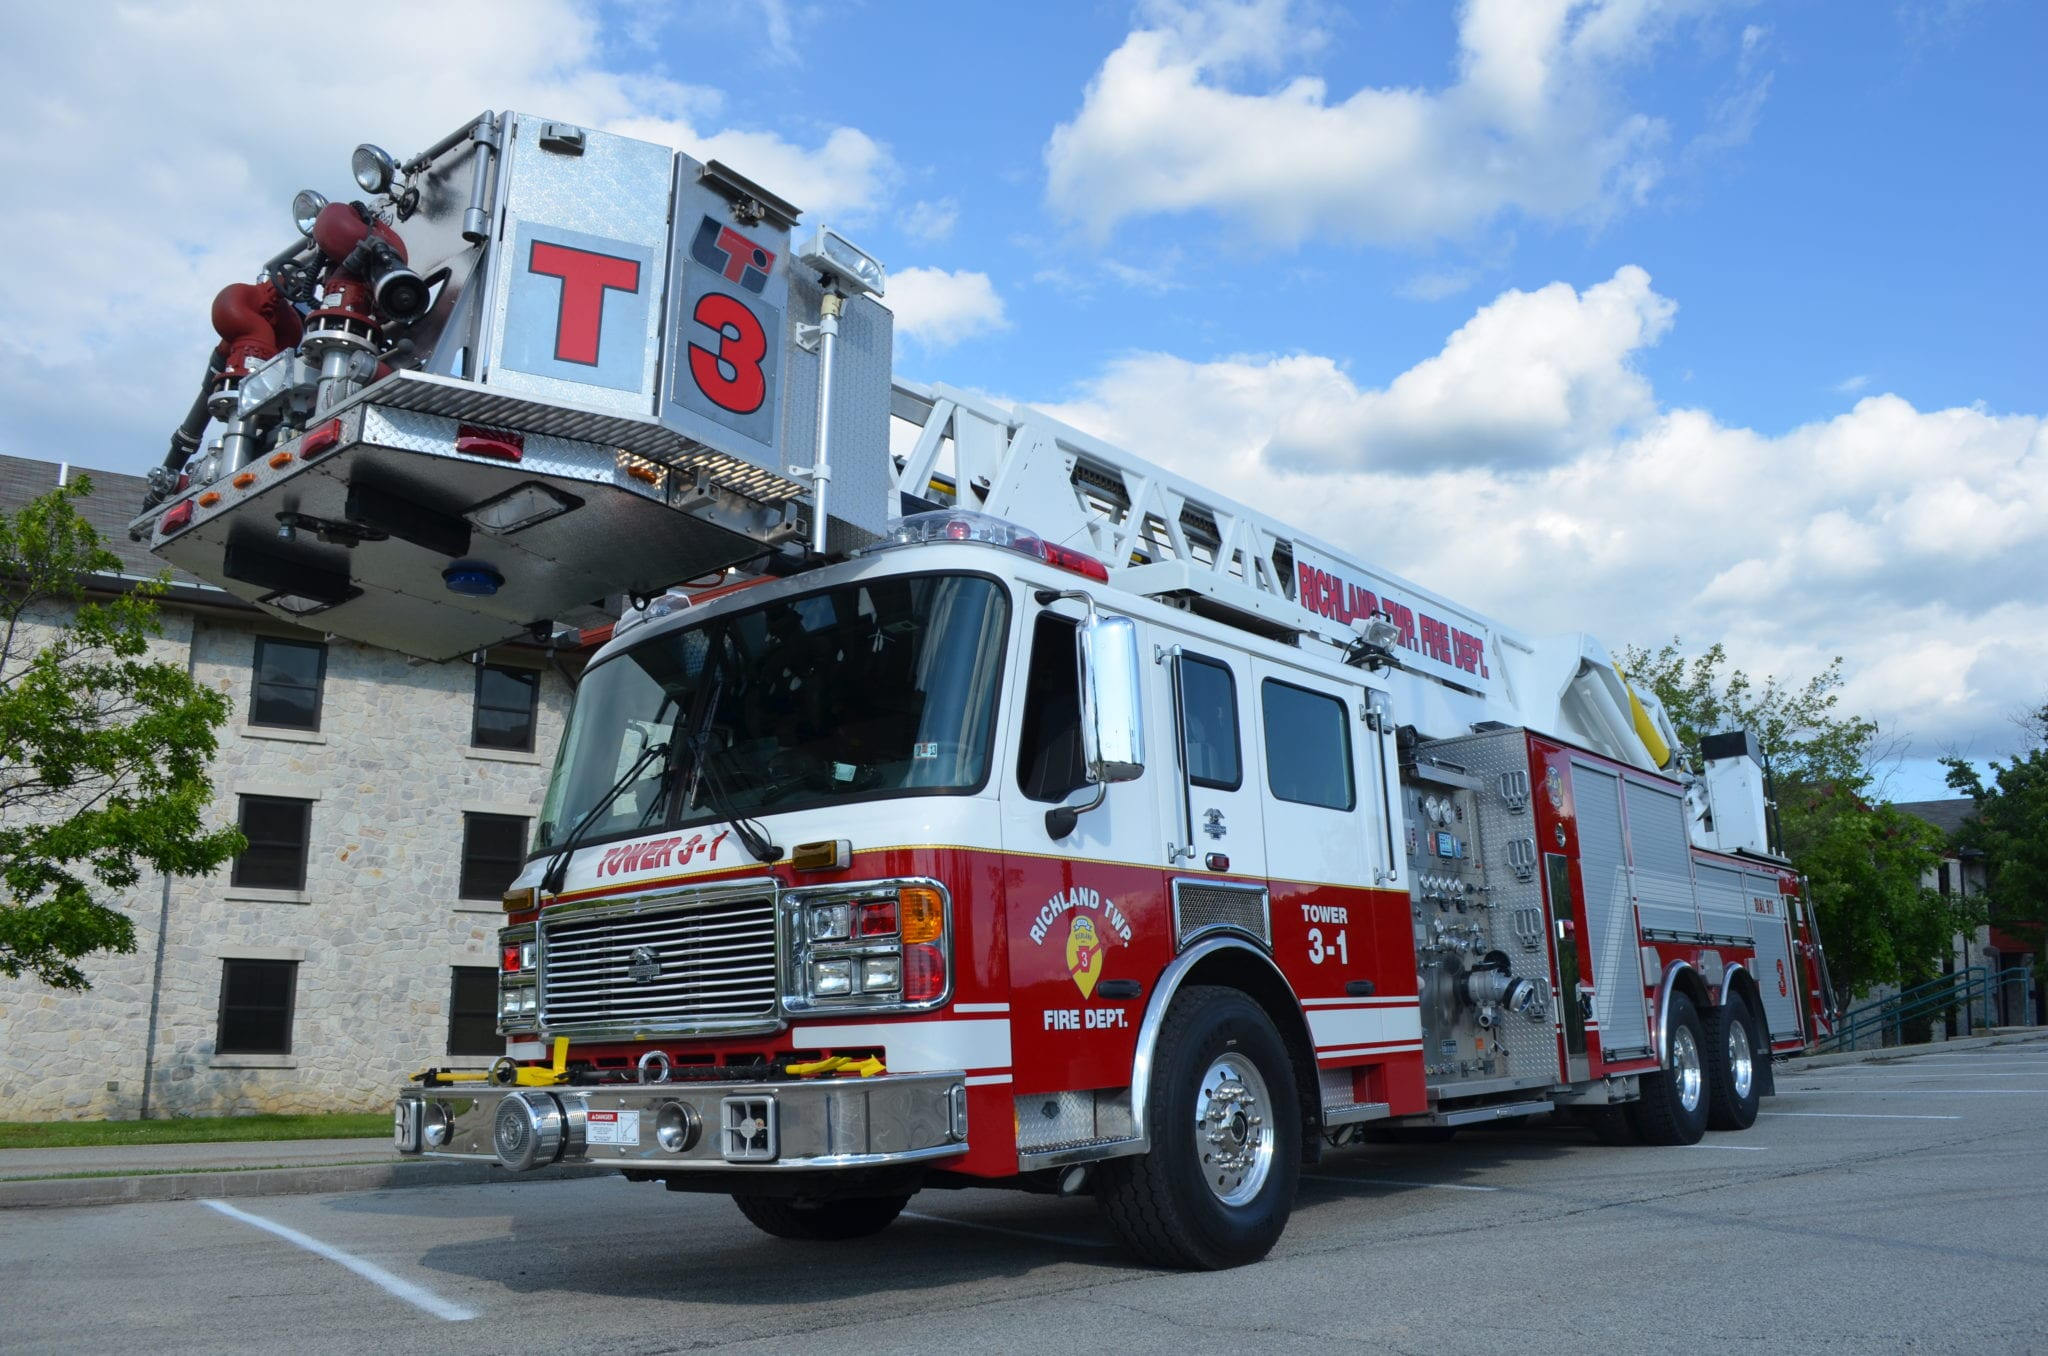 Used Fire Trucks Buy Sell Broker Eone I Line Equipment Traffic Signal System With Remote Override For Emergency Vehicles Apparatus